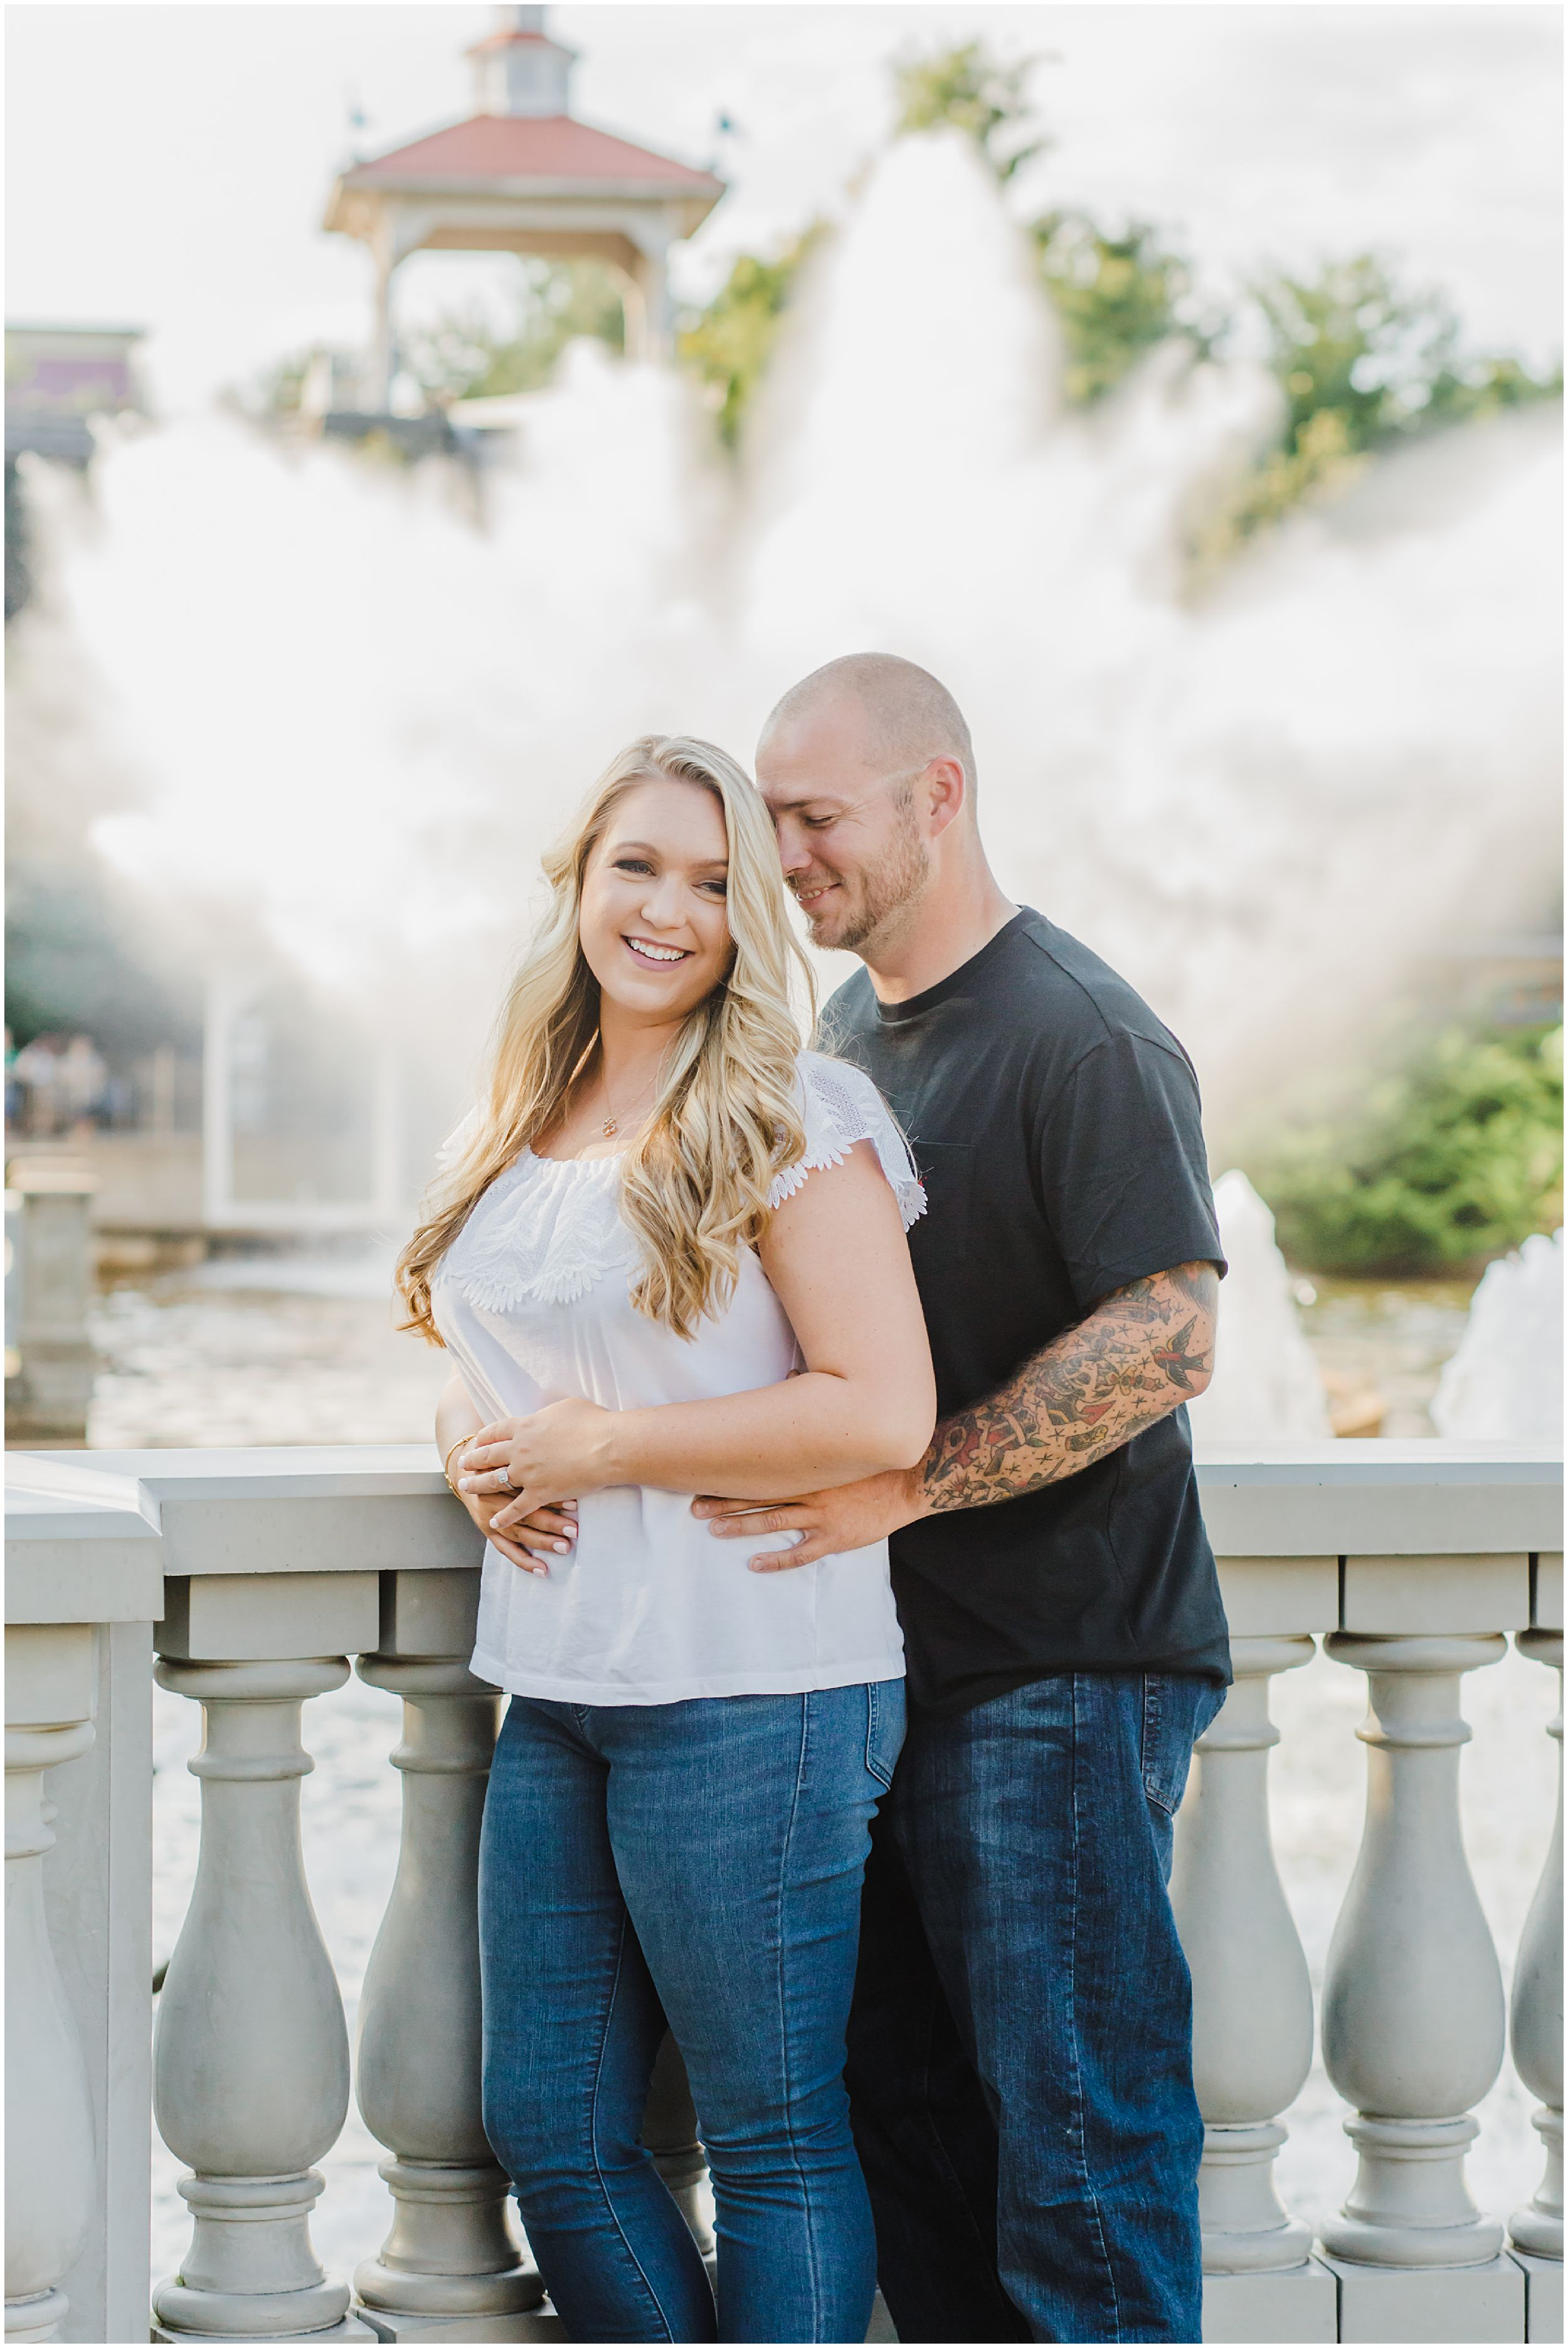 kennywood_engagement_session_0006.jpg